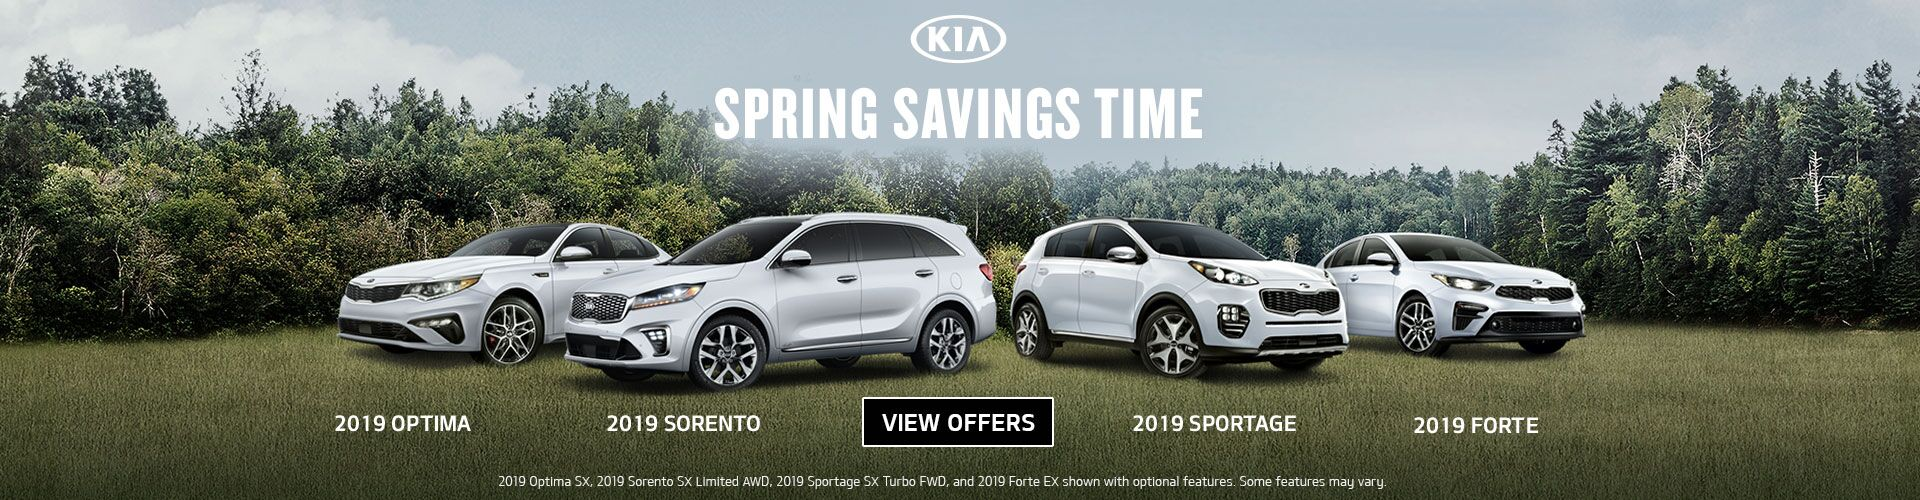 Spring Savings Time